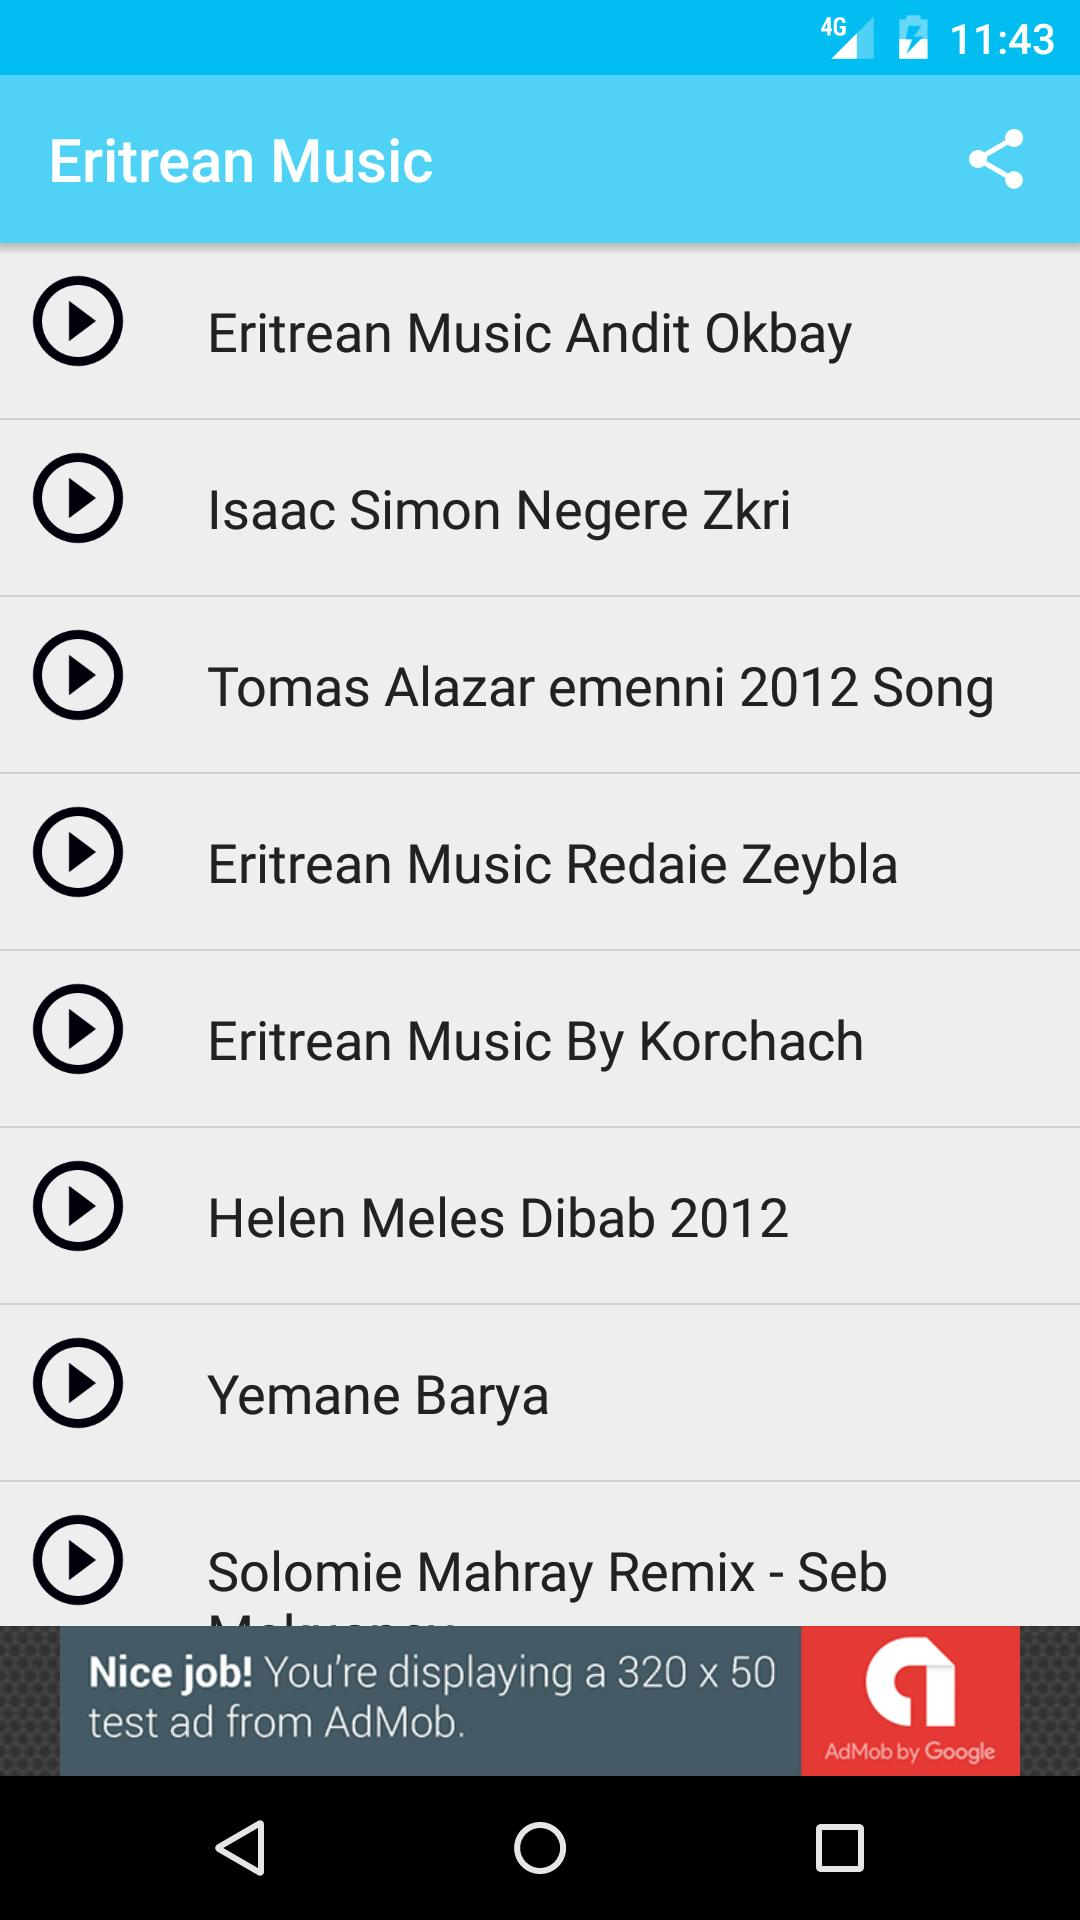 All Eritrean Music for Android - APK Download